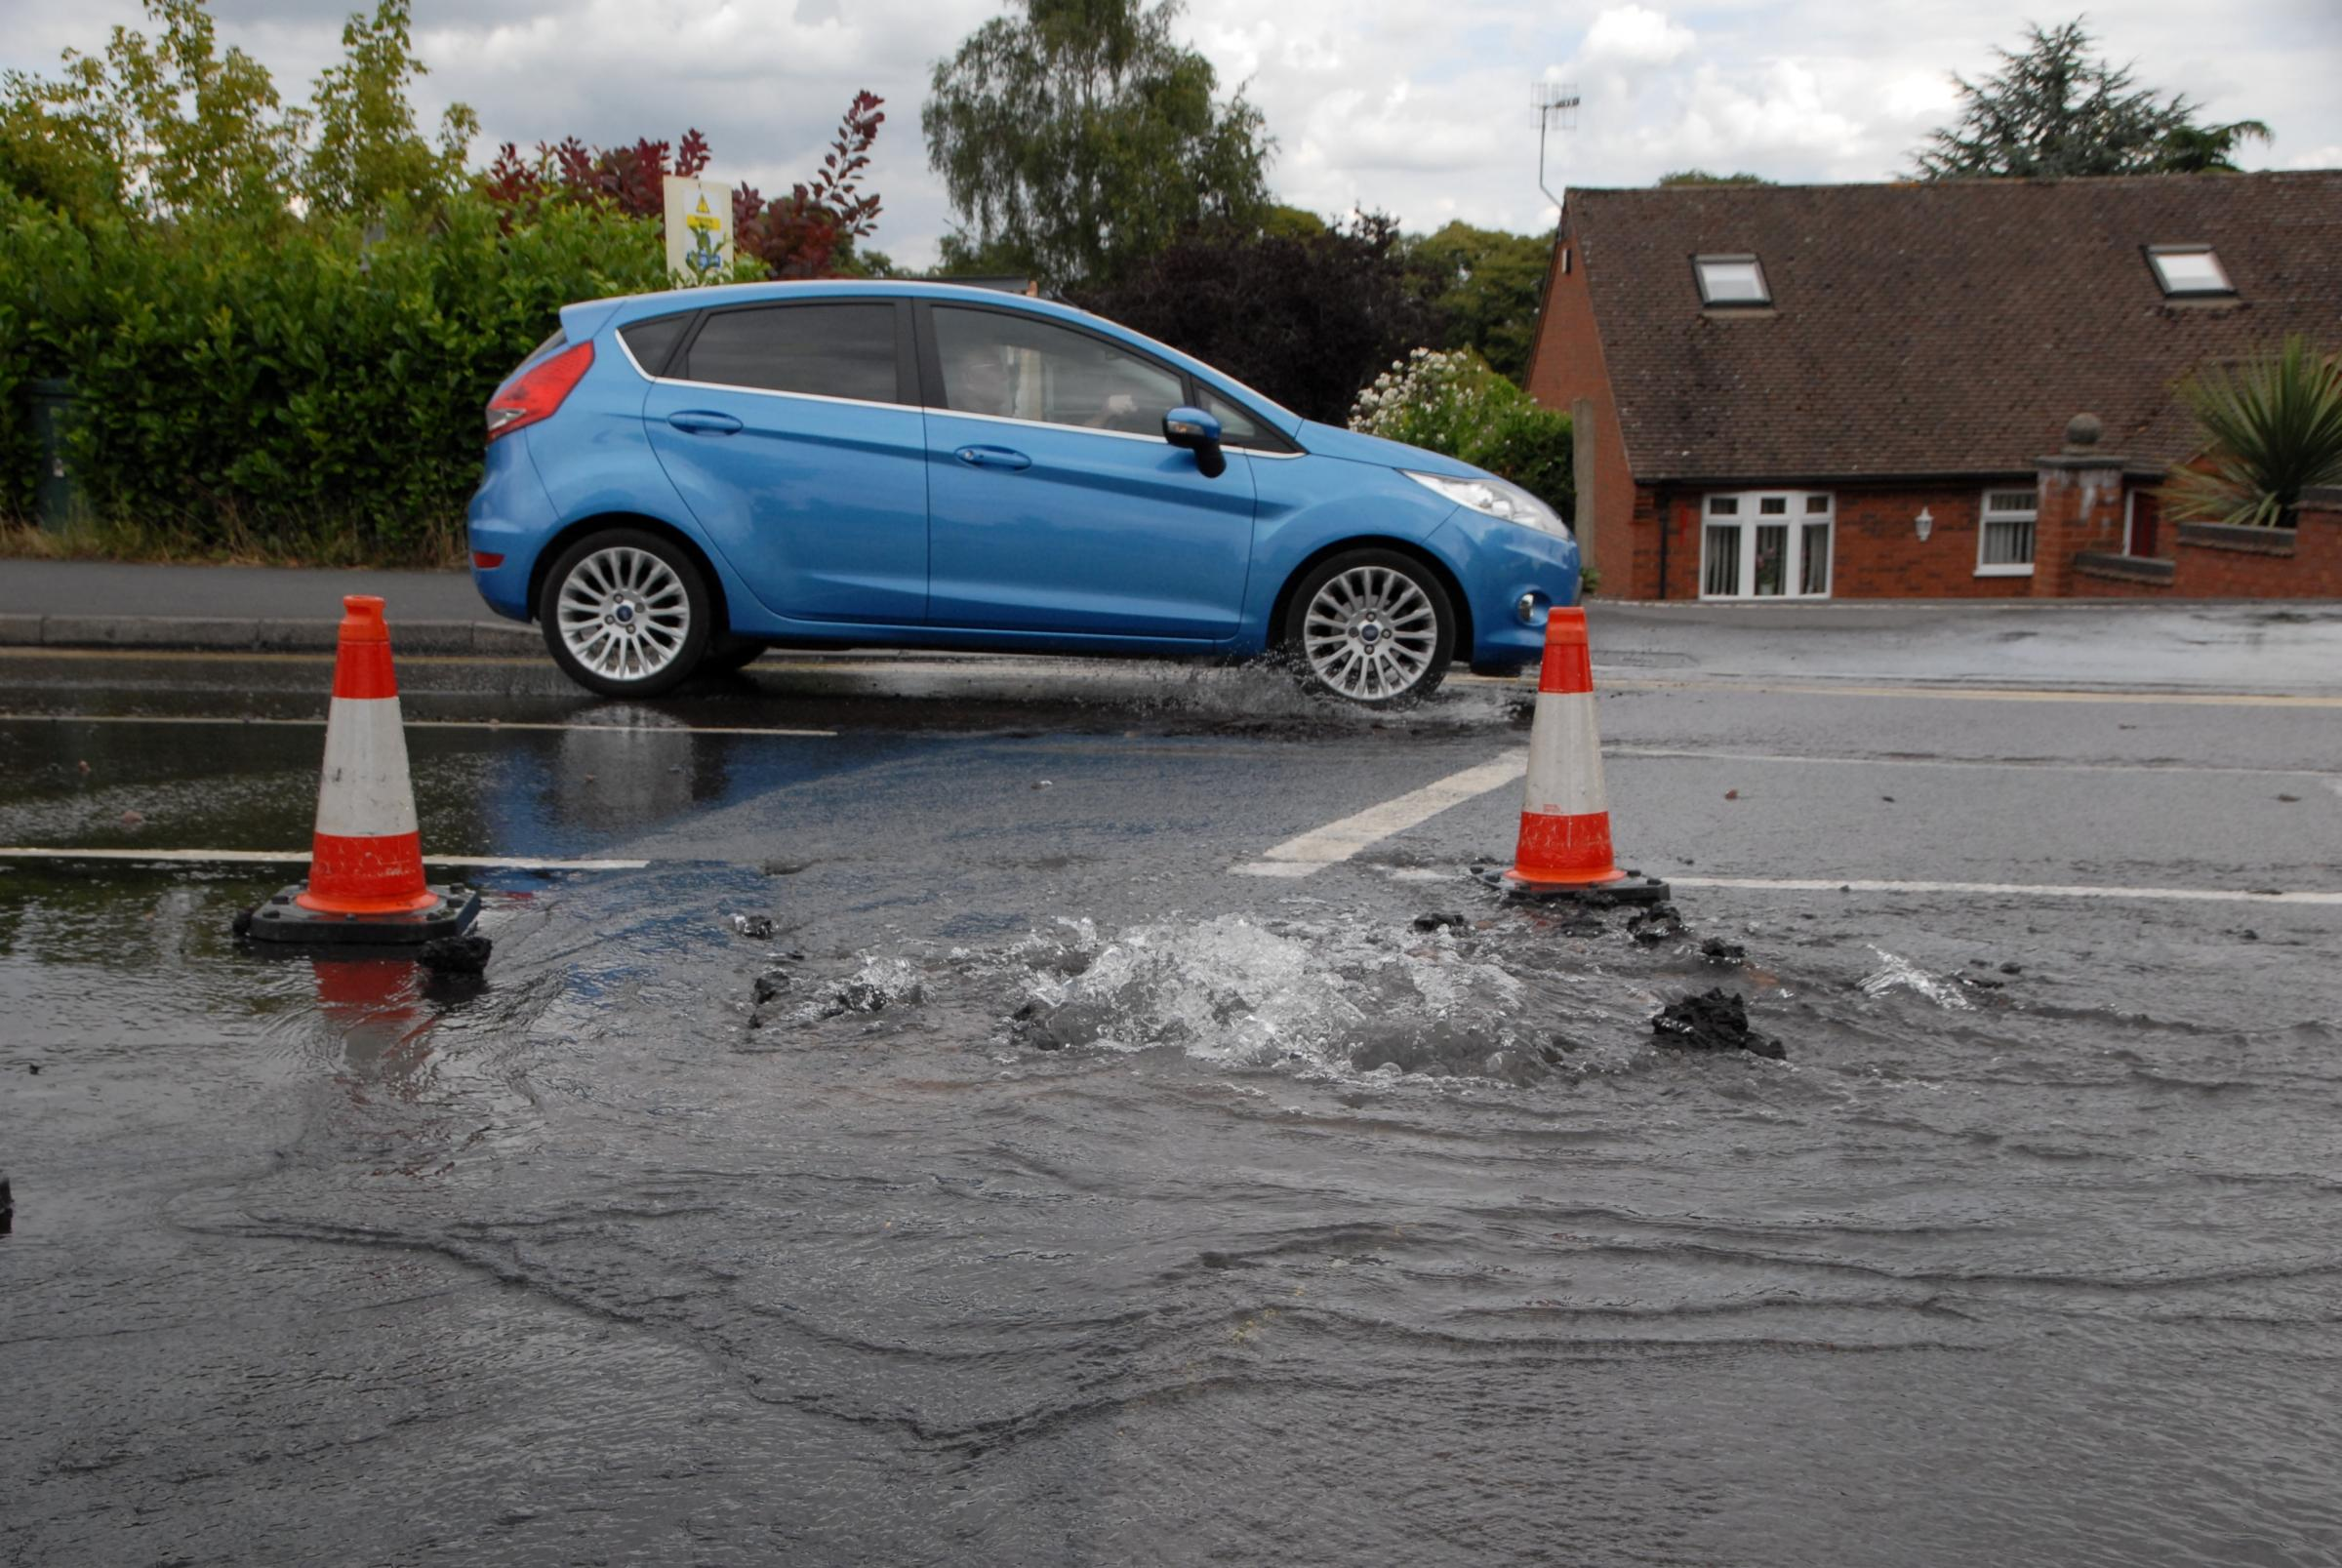 UPDATE: Water main fixed - but traffic lights to remain